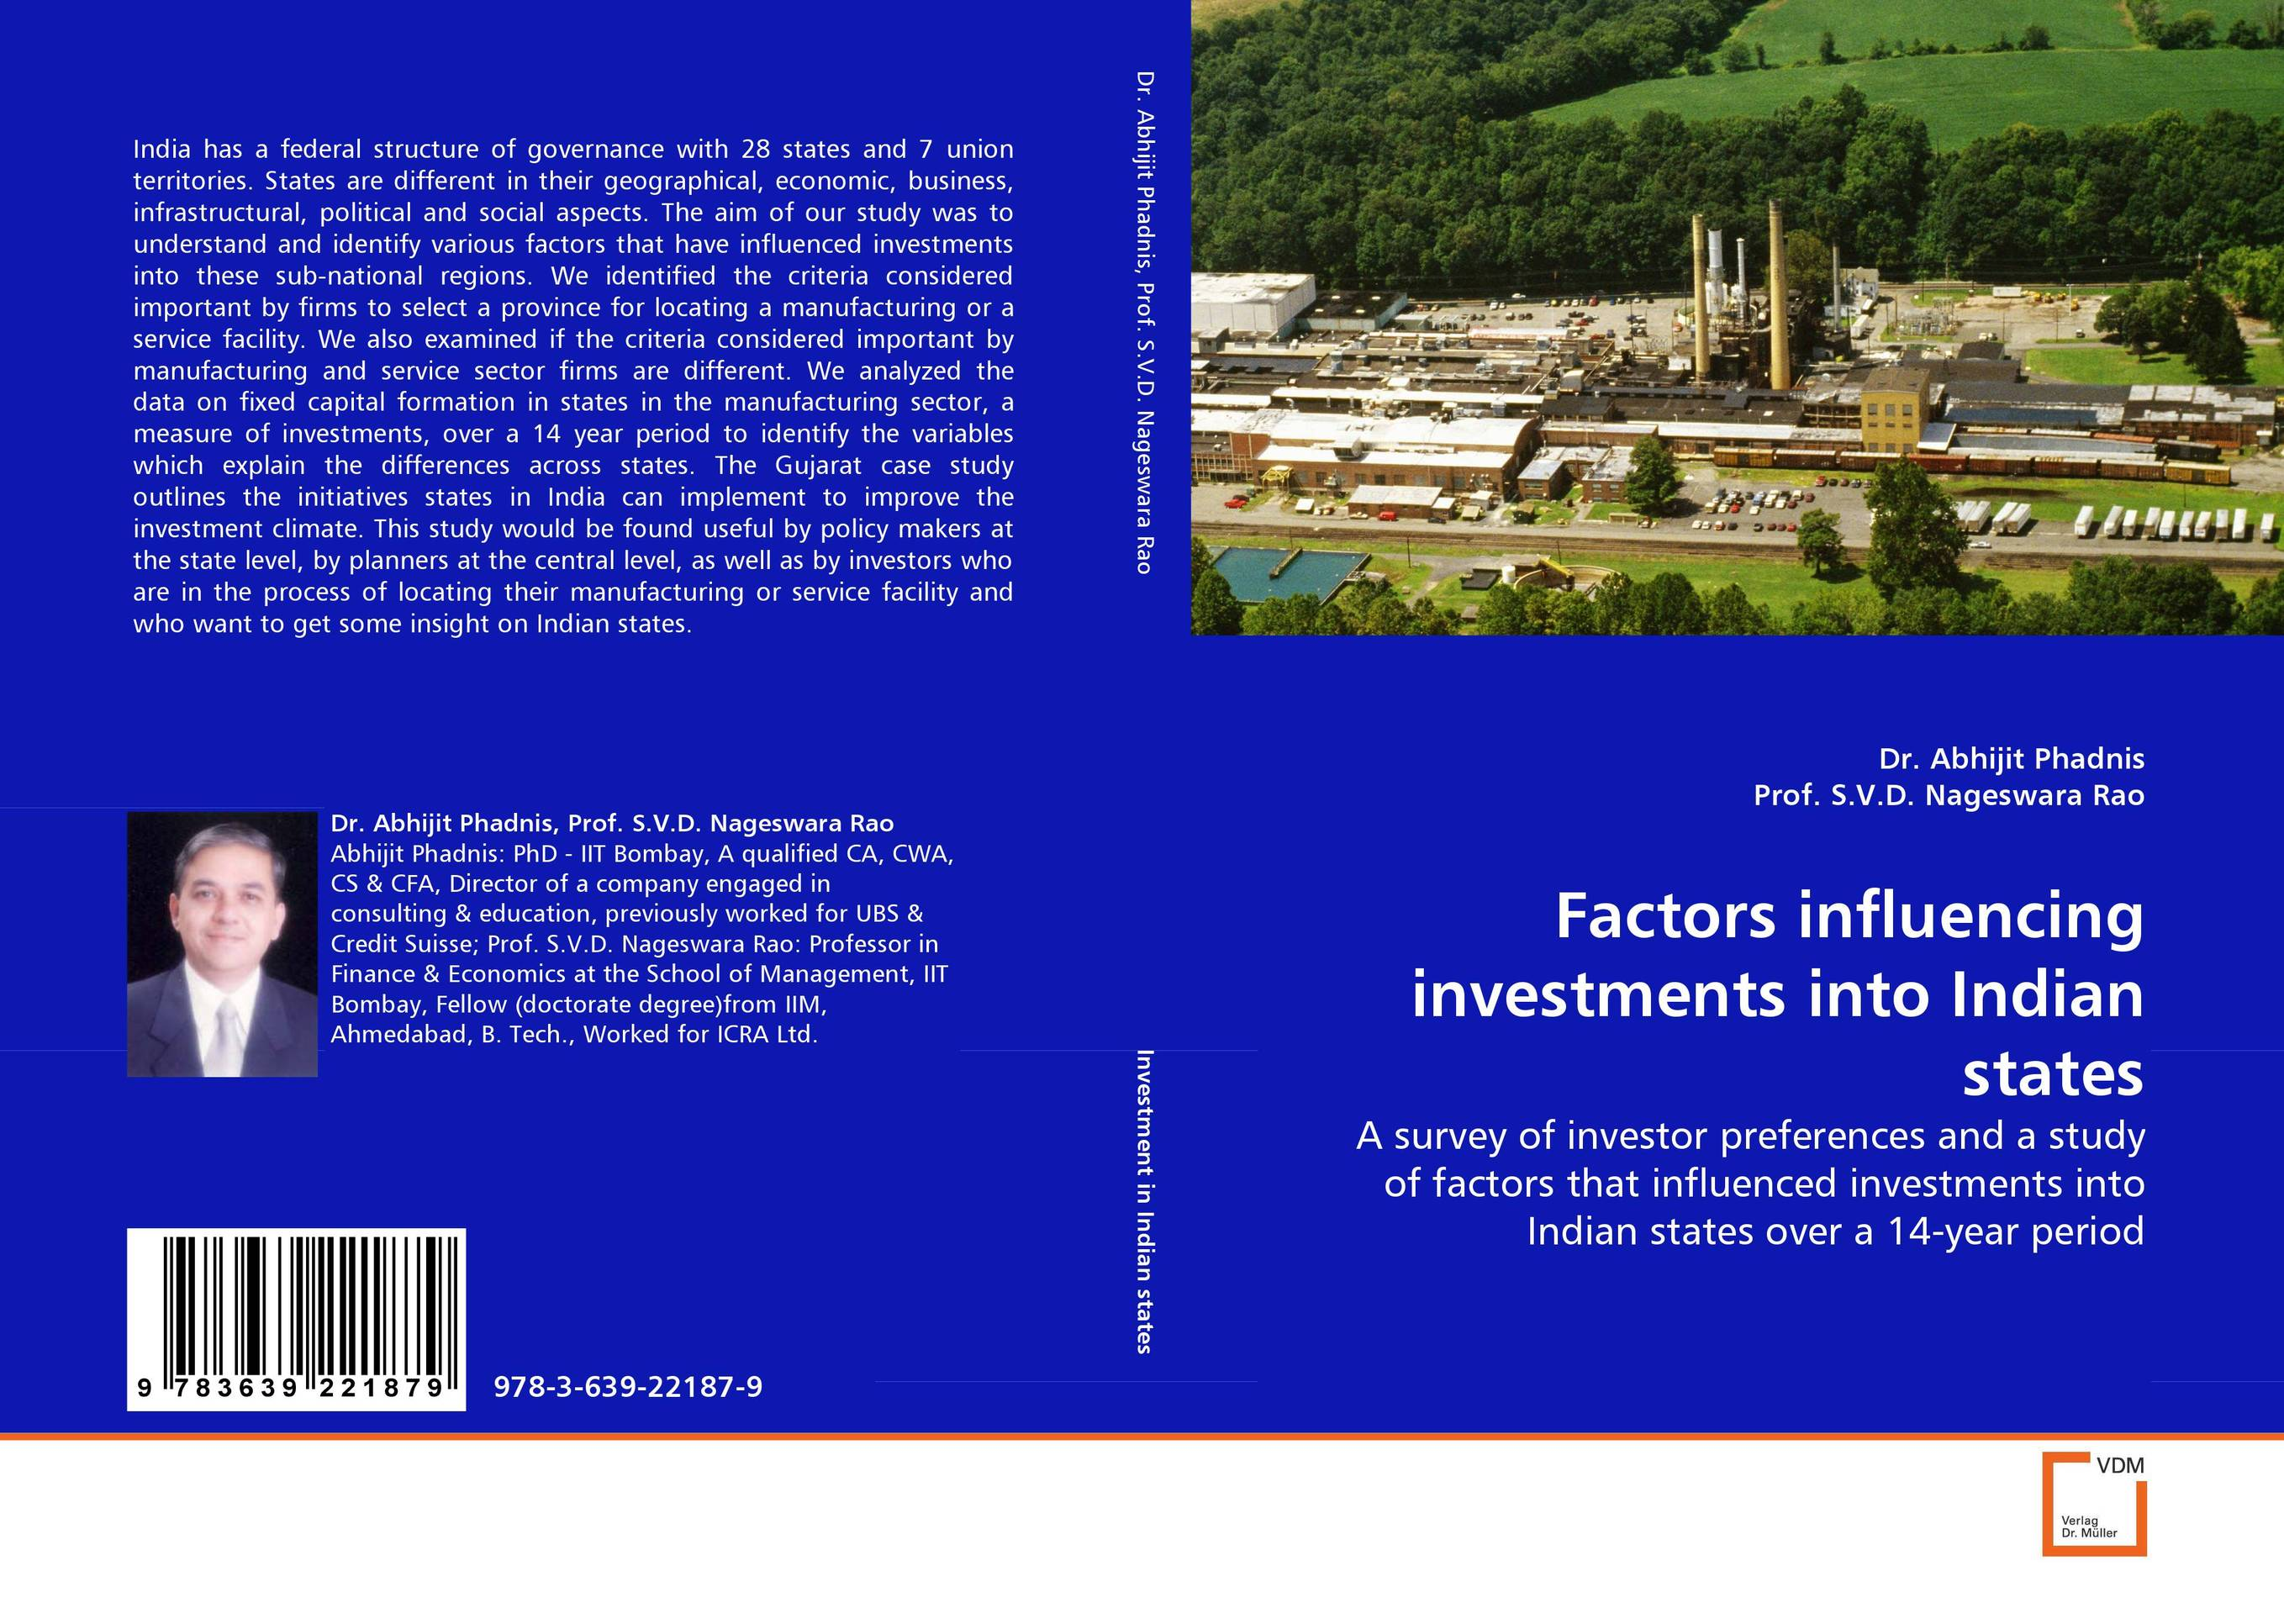 Factors influencing investments into Indian states ravindra kumar jain nod factors and nodulation process by rhizobia in cicer arietinum